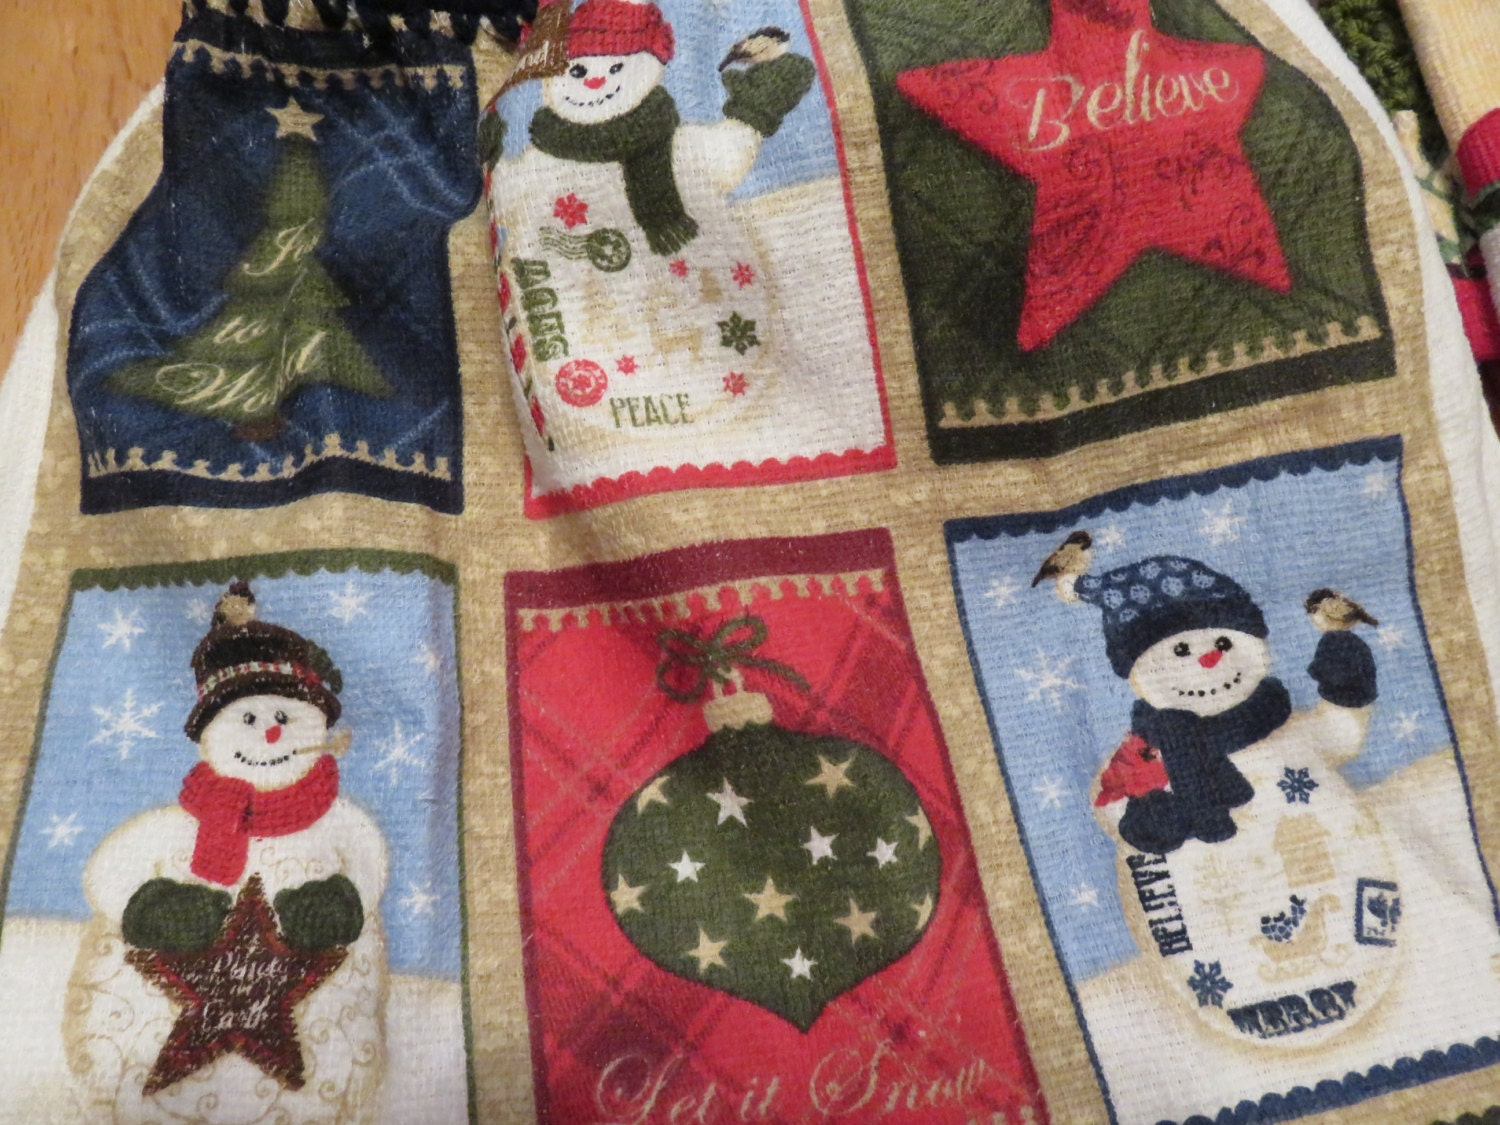 Christmas,Medley,Towel,Crocheted,Top,Kitchen,Housewares,towel,kitchen_towel,kitchen_linen,for_your_home,crocheted_top_towel,crocheted_topper,tablelinen,table_linen,Christmas_medley,christmas_towel,Christmas_tree,Christmas_linens,terry cloth,yarn,button